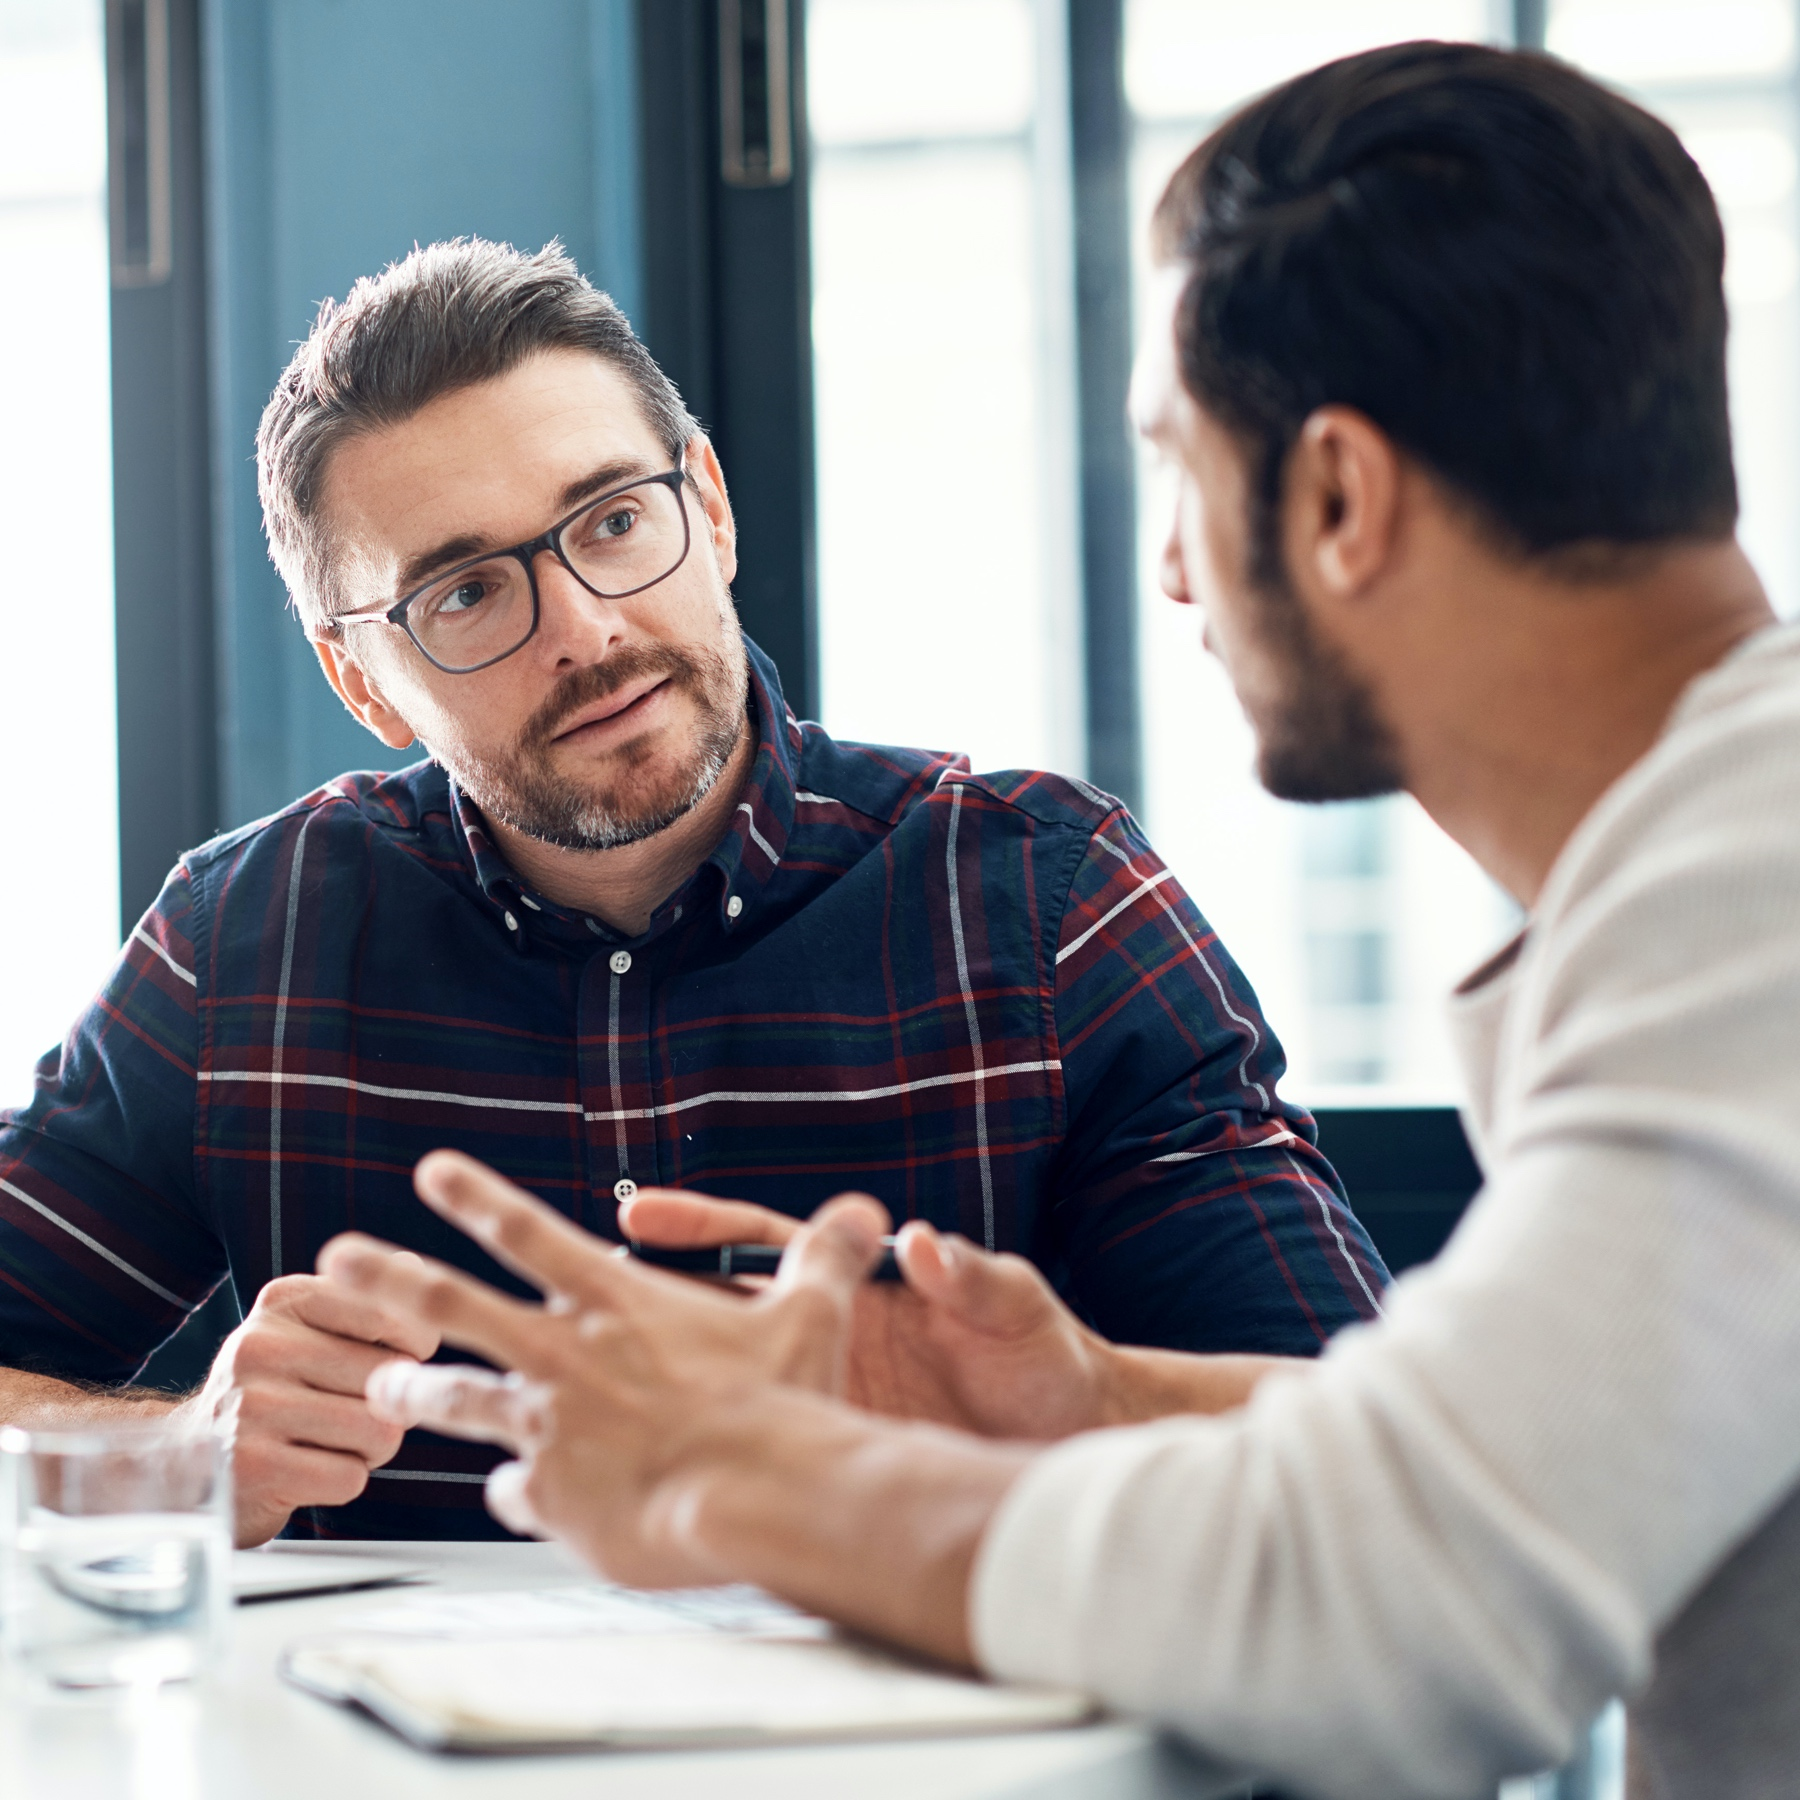 Employer interviewing a potential employee in a conference room.